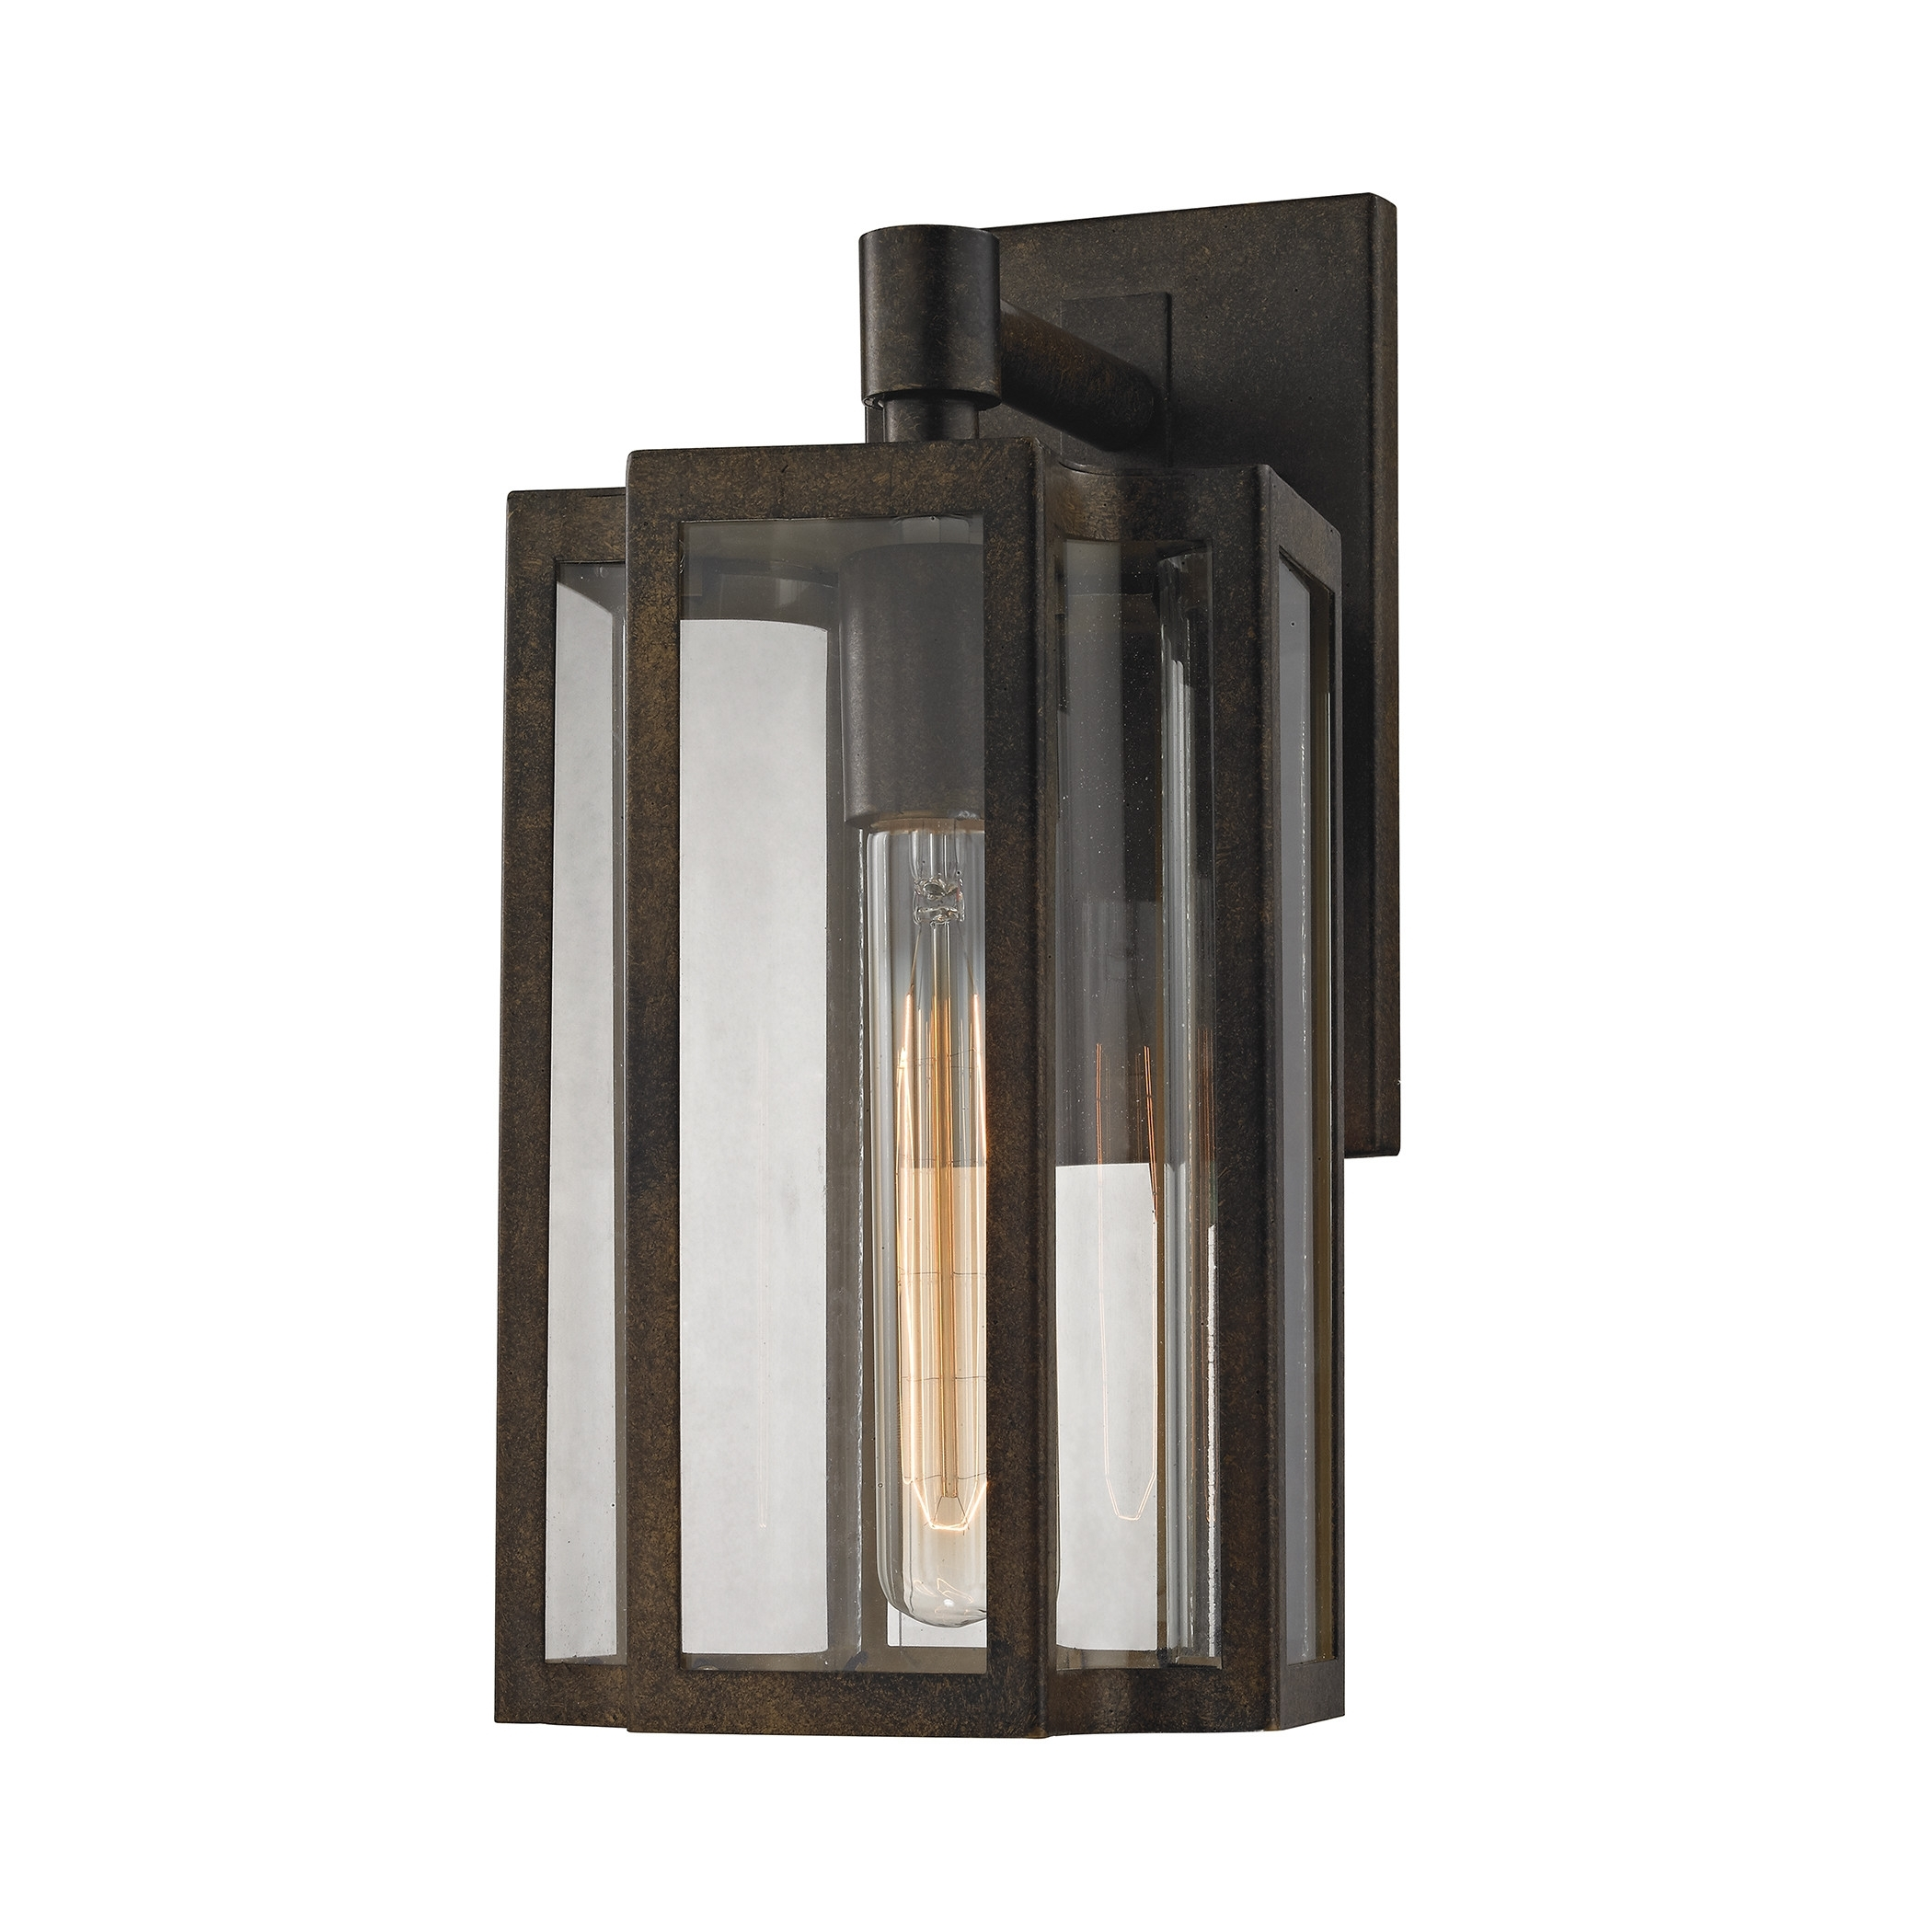 Bianca 1 Light Outdoor Wall Lantern | Outdoor Walls, Outdoor Wall Within Outdoor Lighting And Light Fixtures At Wayfair (View 10 of 15)